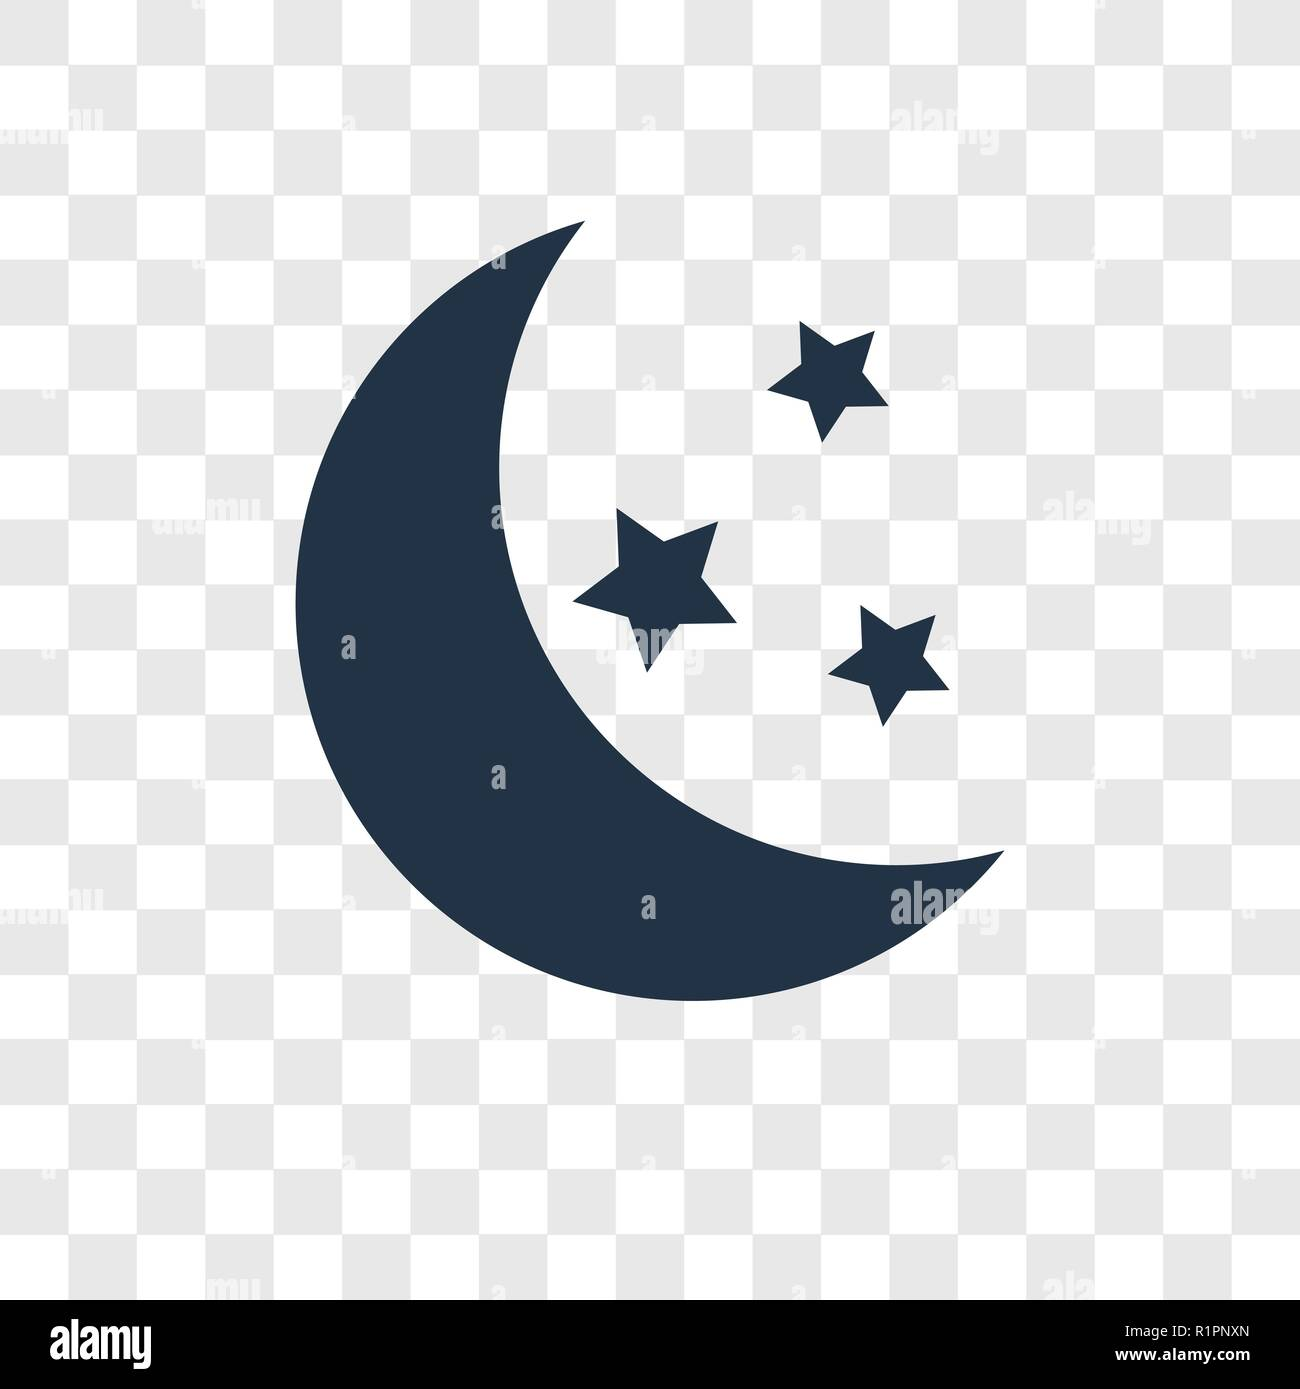 moon vector icon isolated on transparent background moon transparency logo concept stock vector image art alamy https www alamy com moon vector icon isolated on transparent background moon transparency logo concept image224849597 html